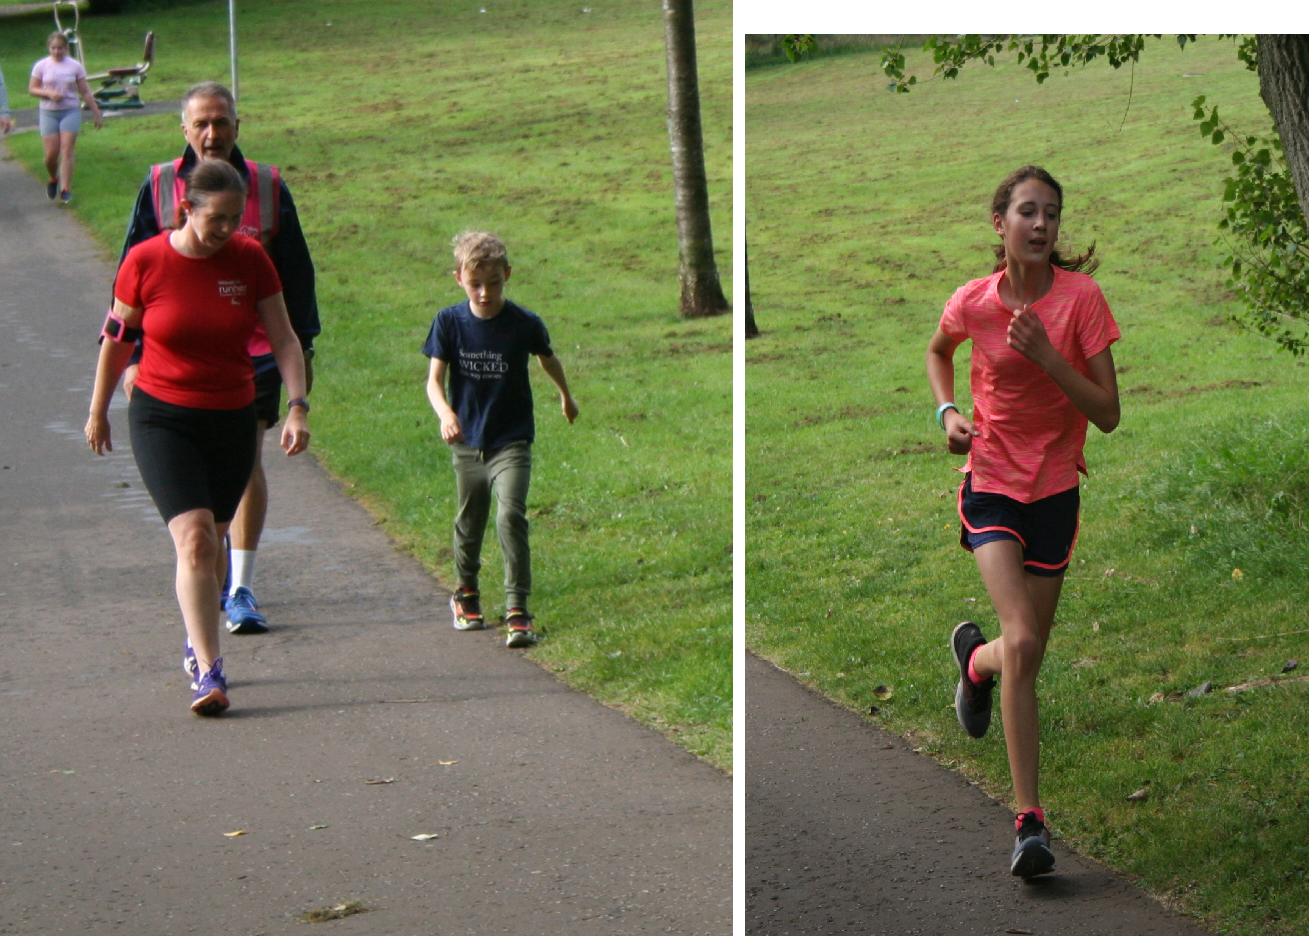 New personal bests on their 10th parkrun